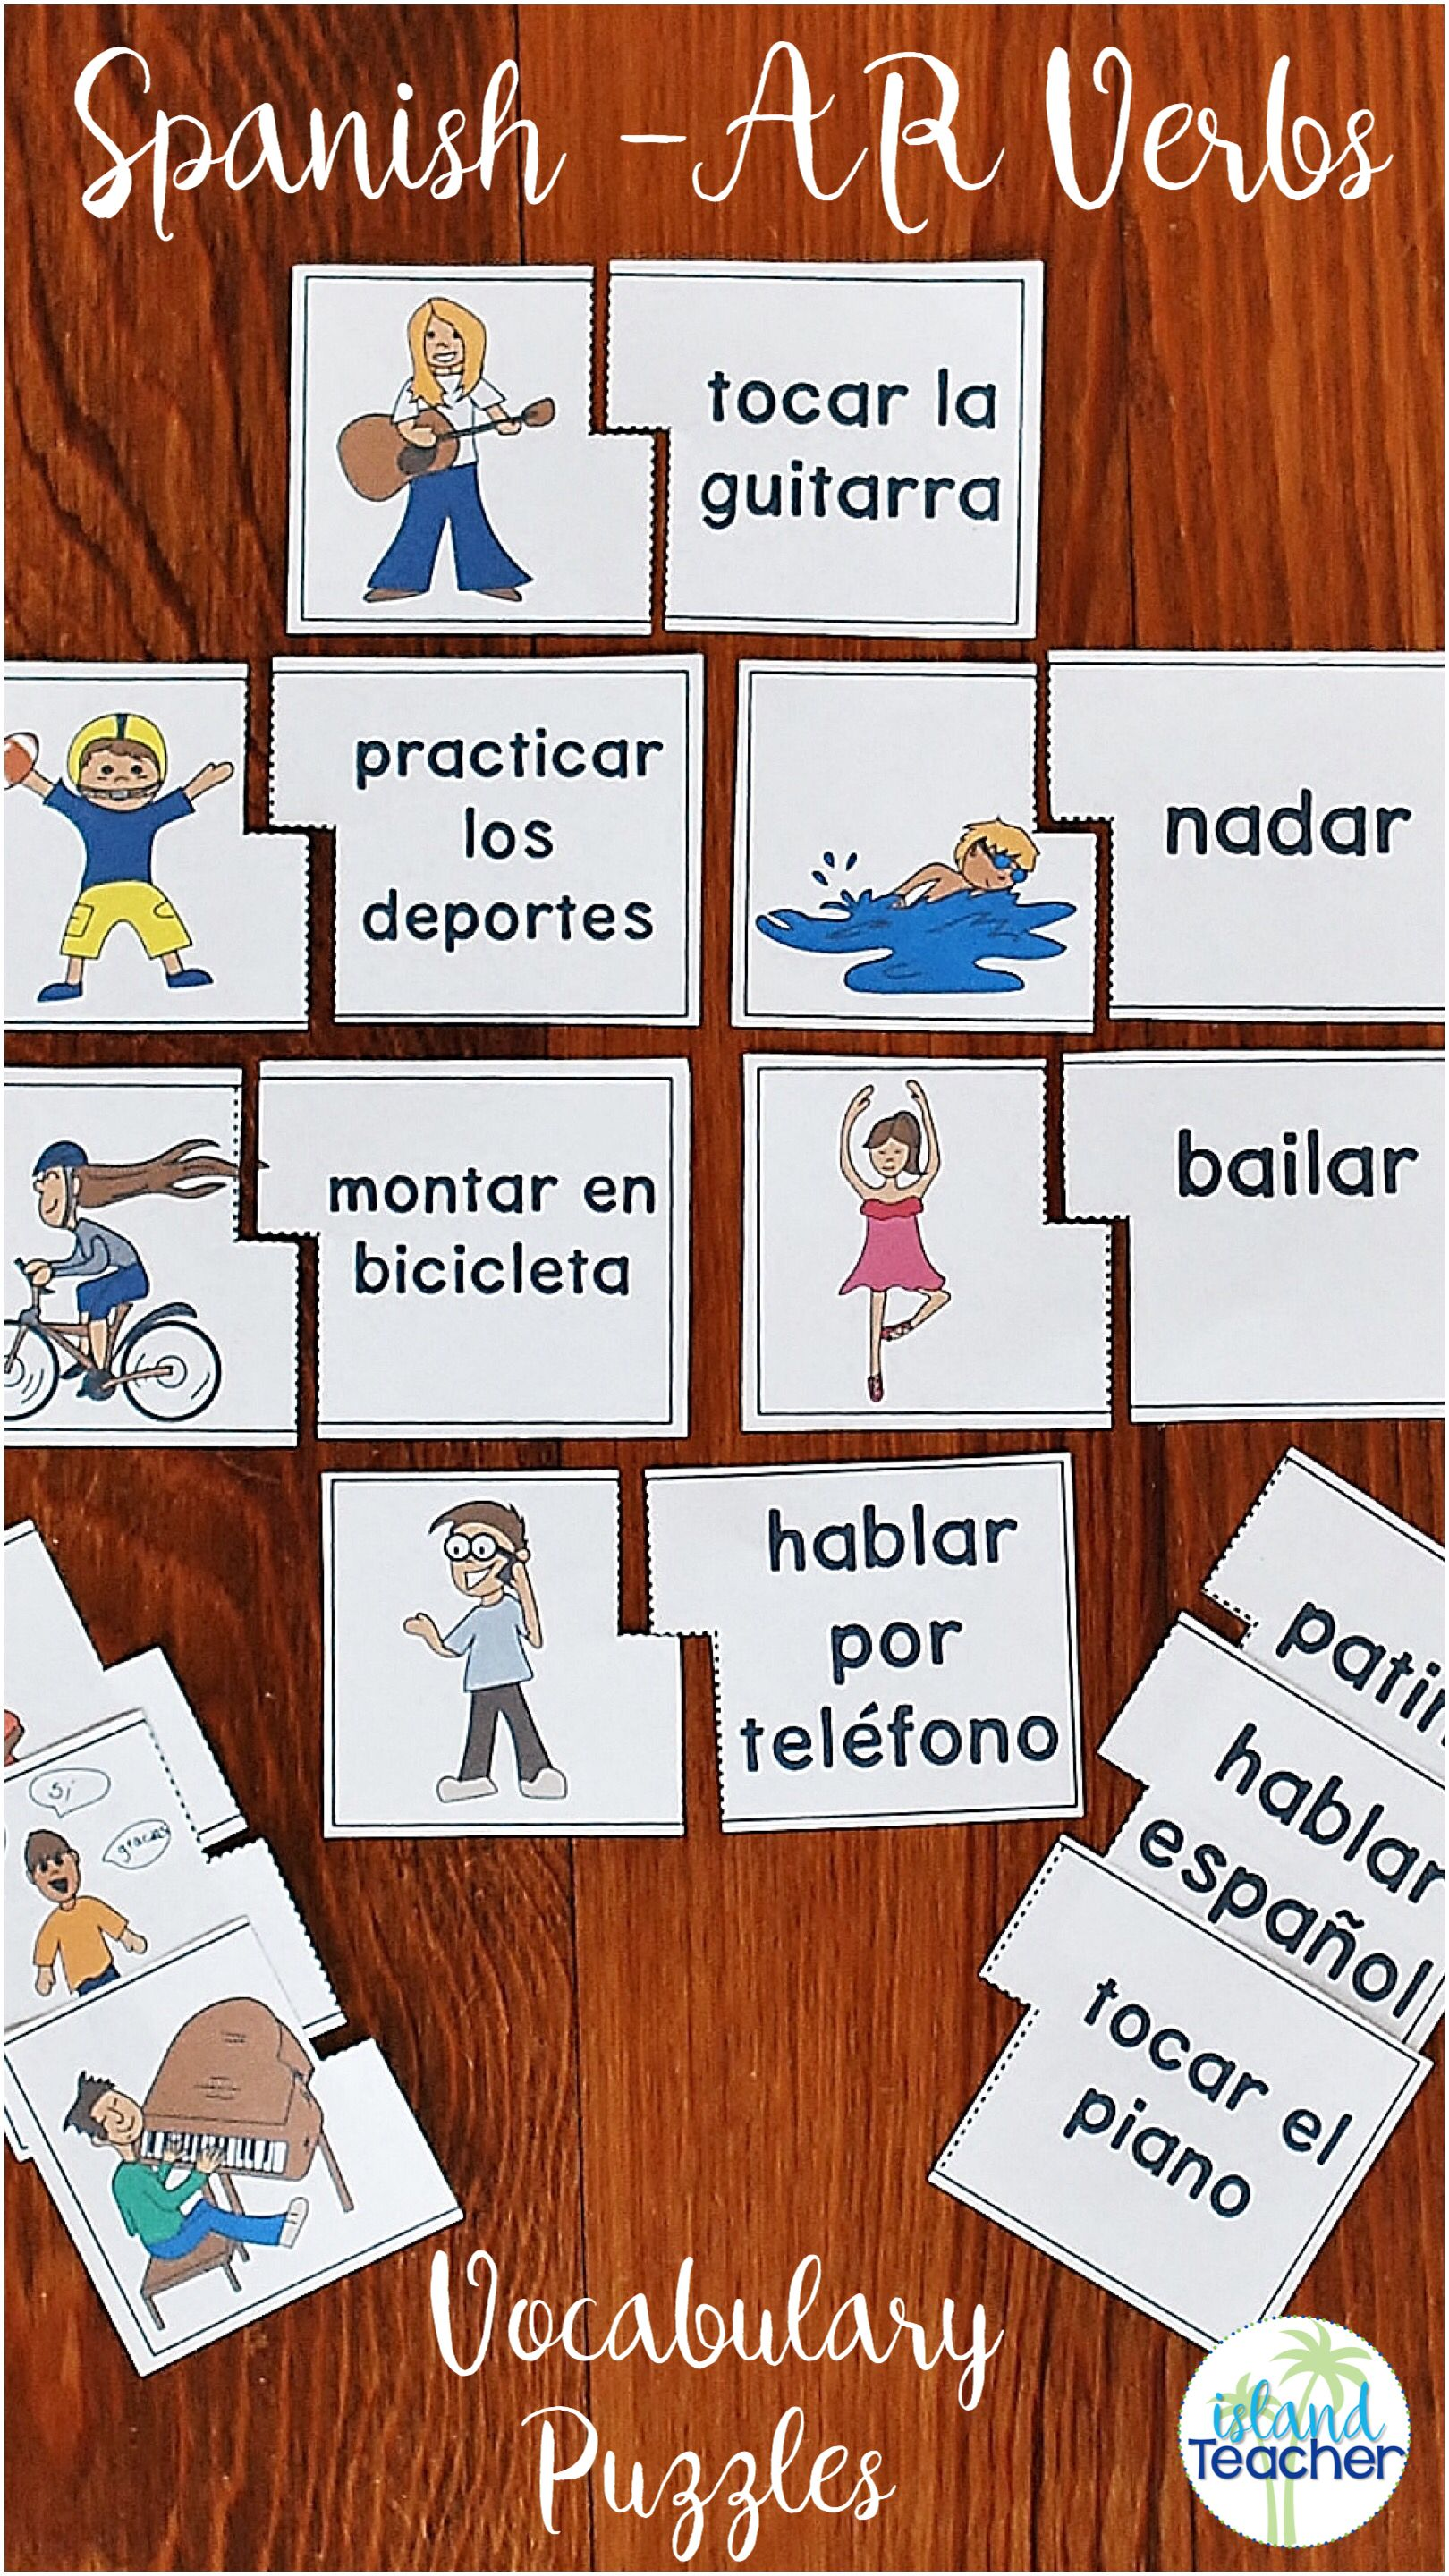 Spanish Ar Verbs Puzzles Learning Spanish Spanish Lessons For Kids Teaching Spanish [ 2880 x 1620 Pixel ]